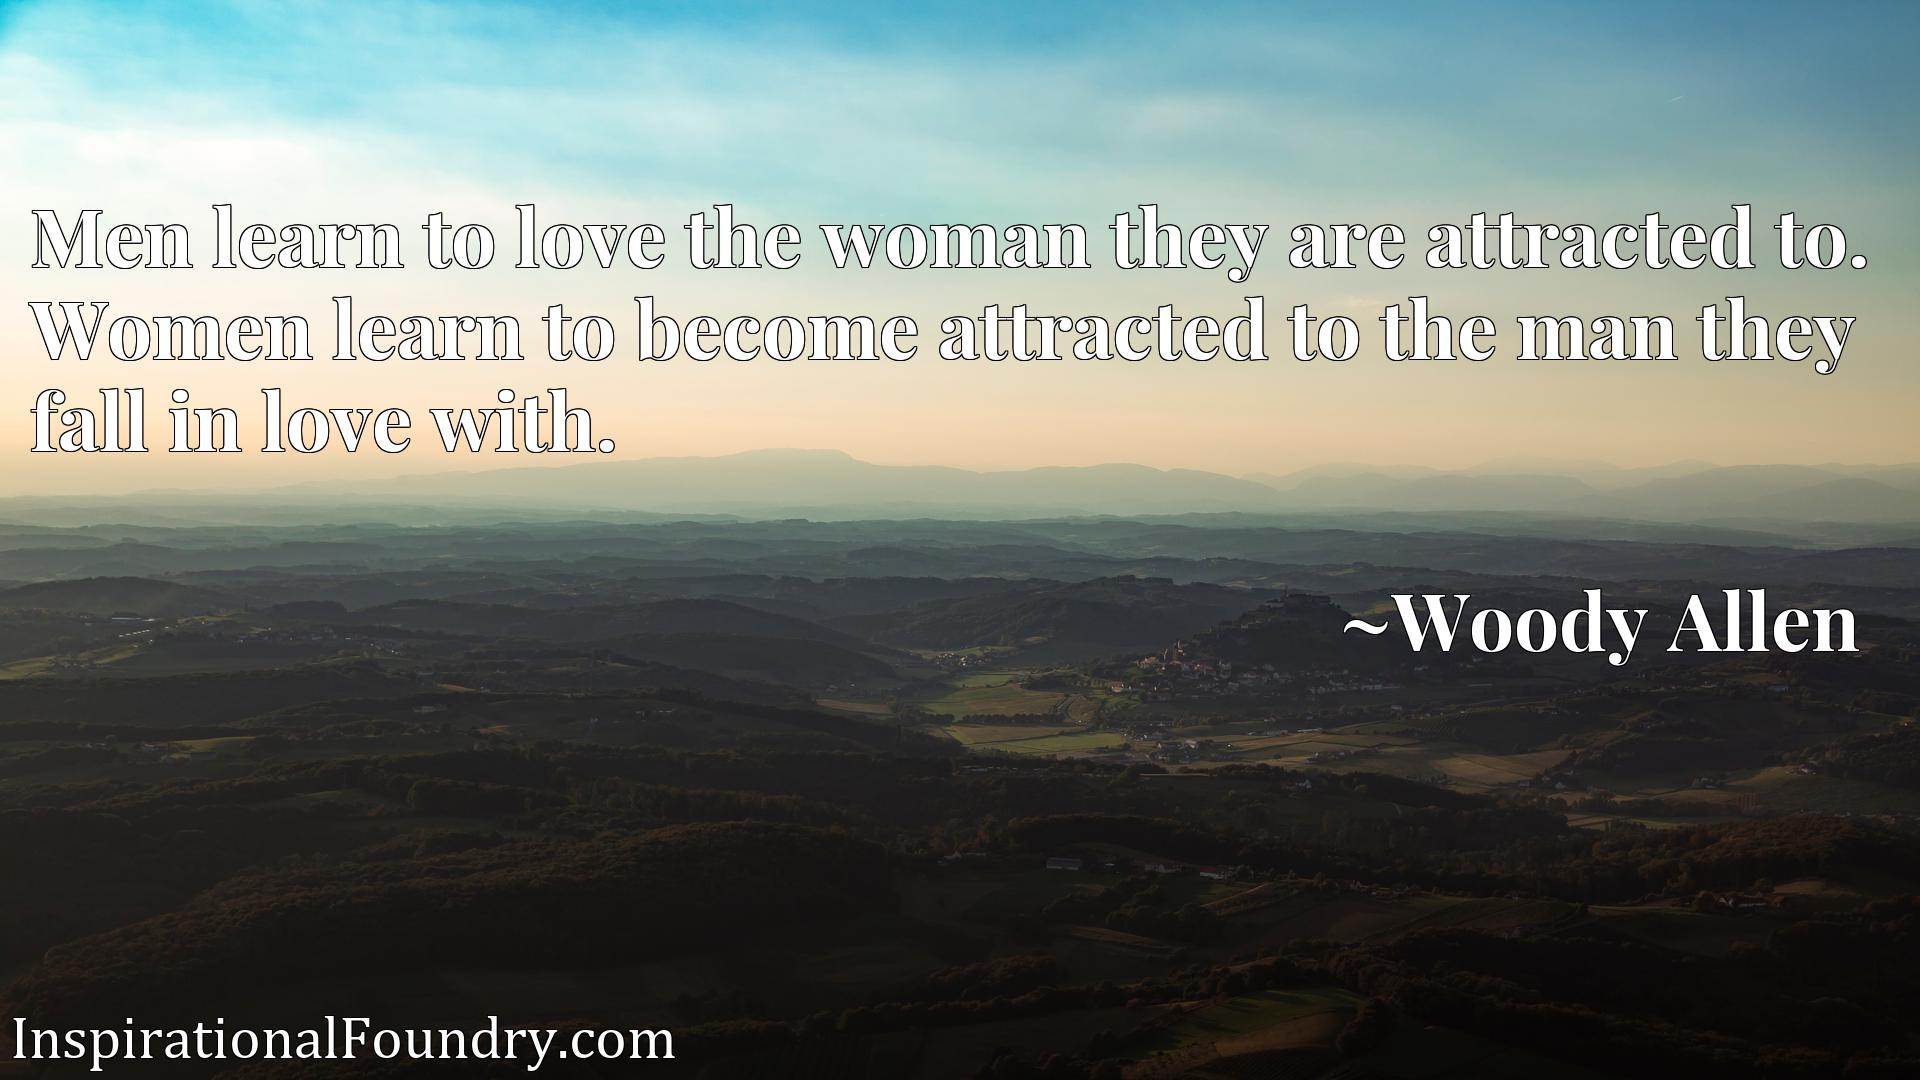 Men learn to love the woman they are attracted to. Women learn to become attracted to the man they fall in love with.